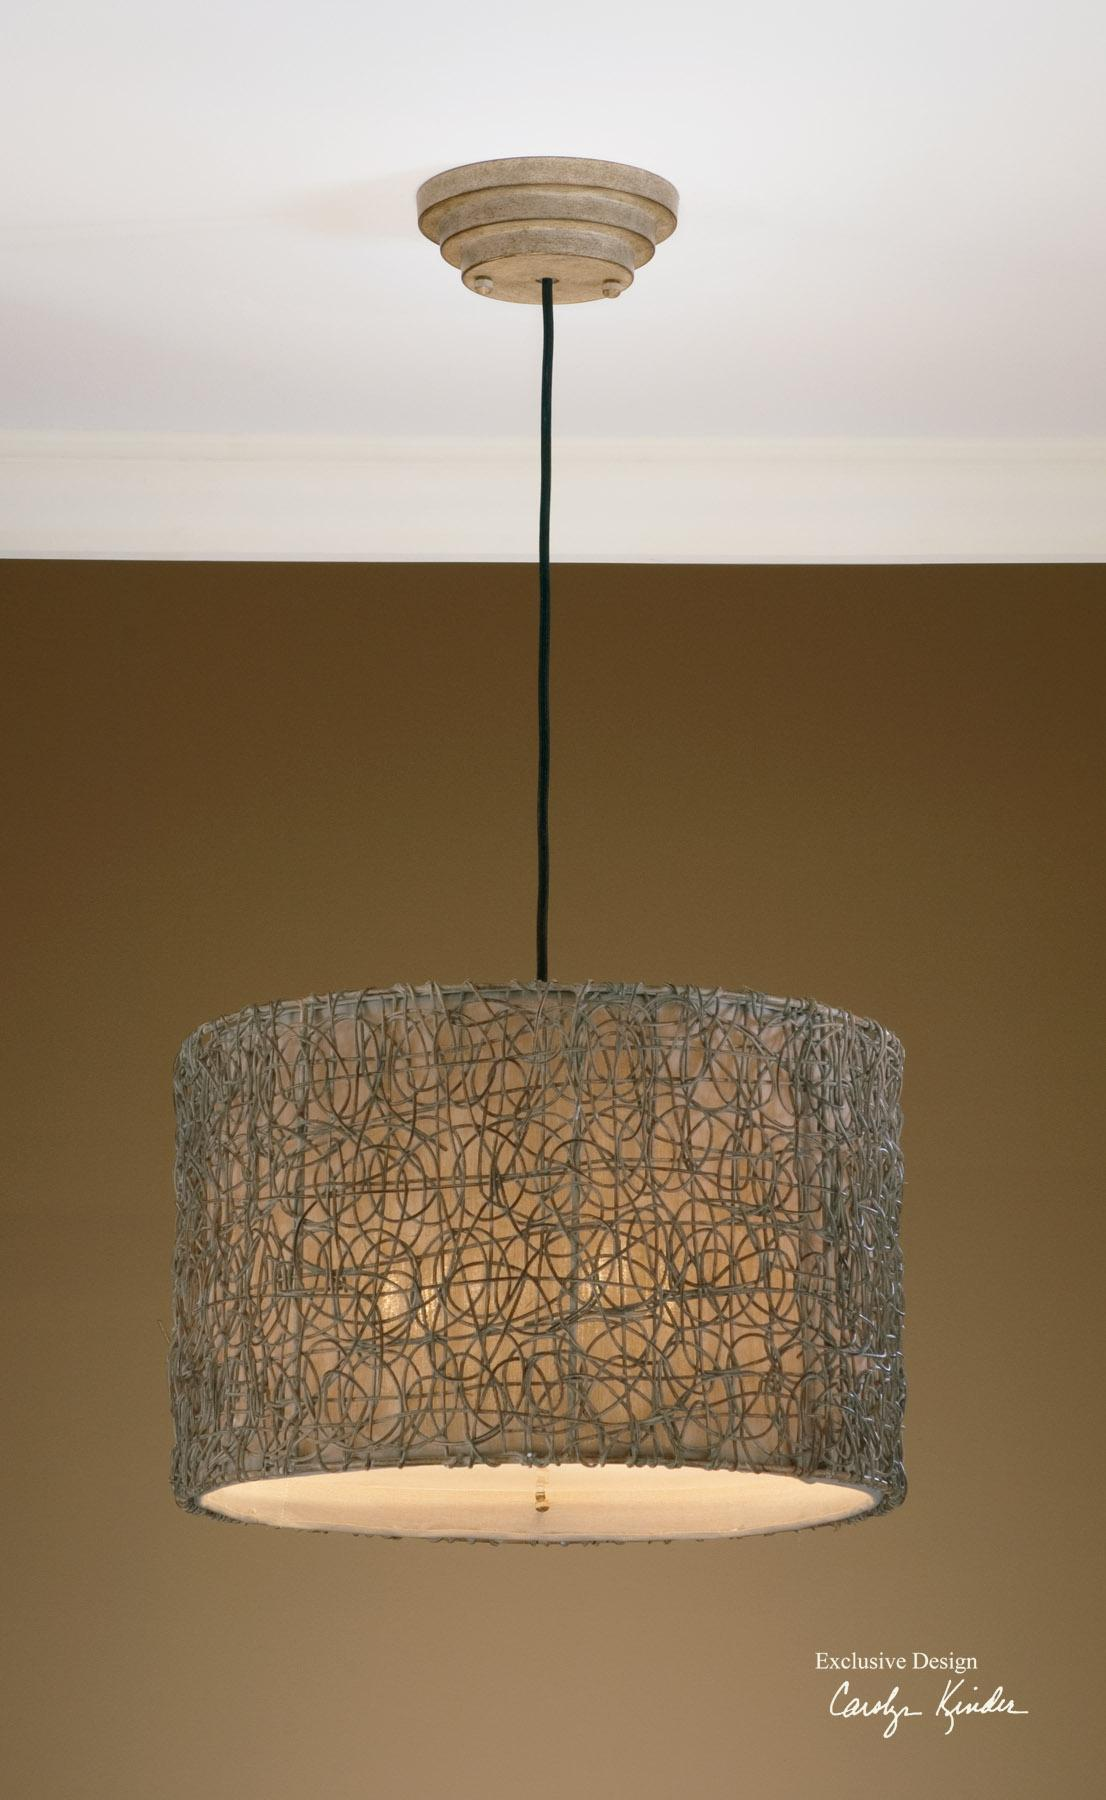 Uttermost Lighting Fixtures Knotted Rattan Light Hanging Shade - Item Number: 21105